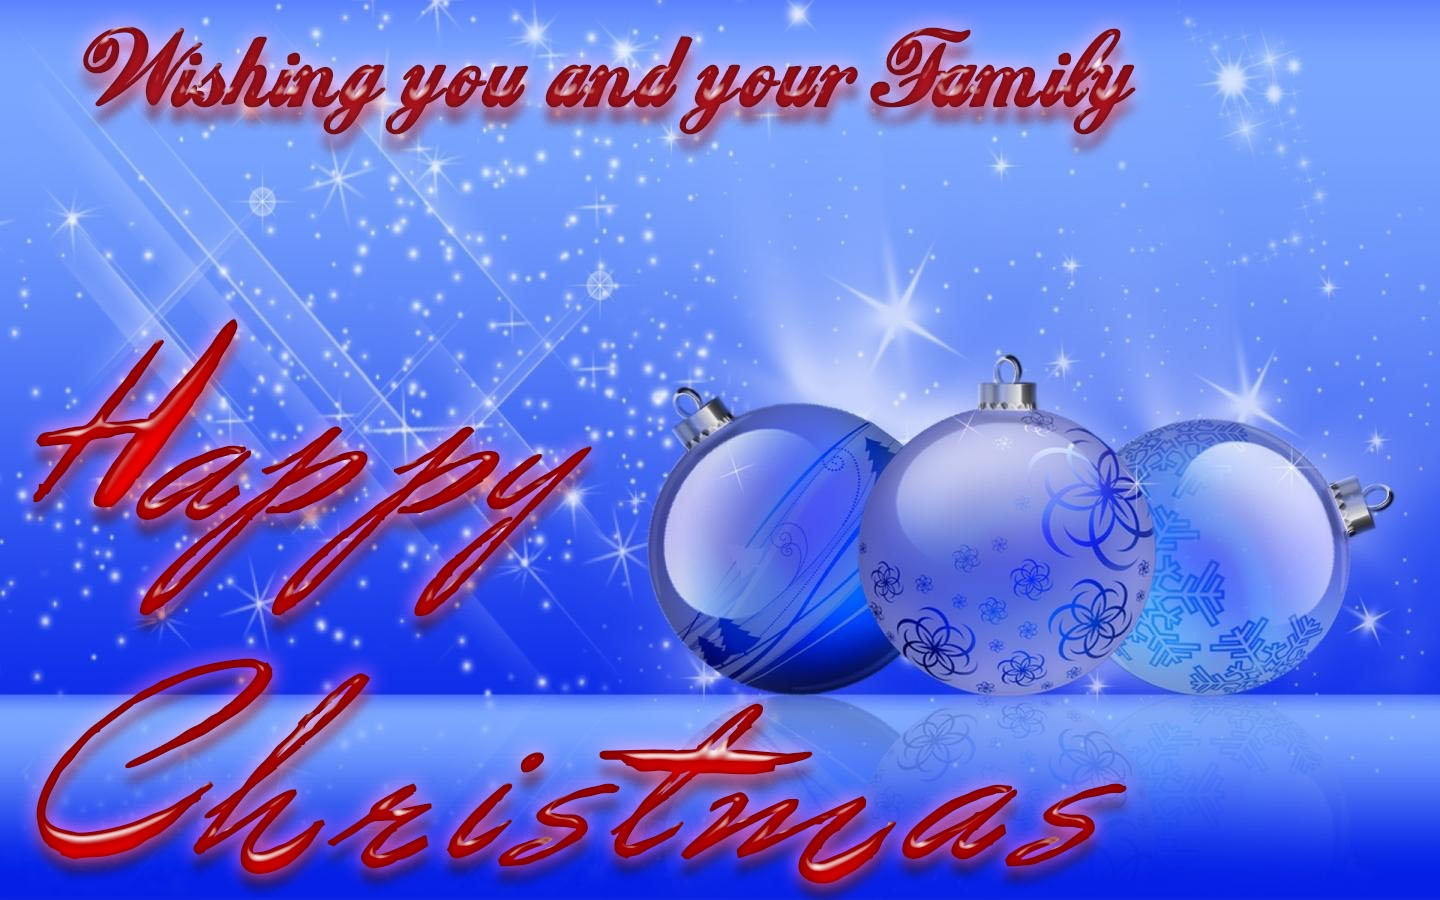 family christmas greetings cards online for free xmas photo greetings cards for christmas 016